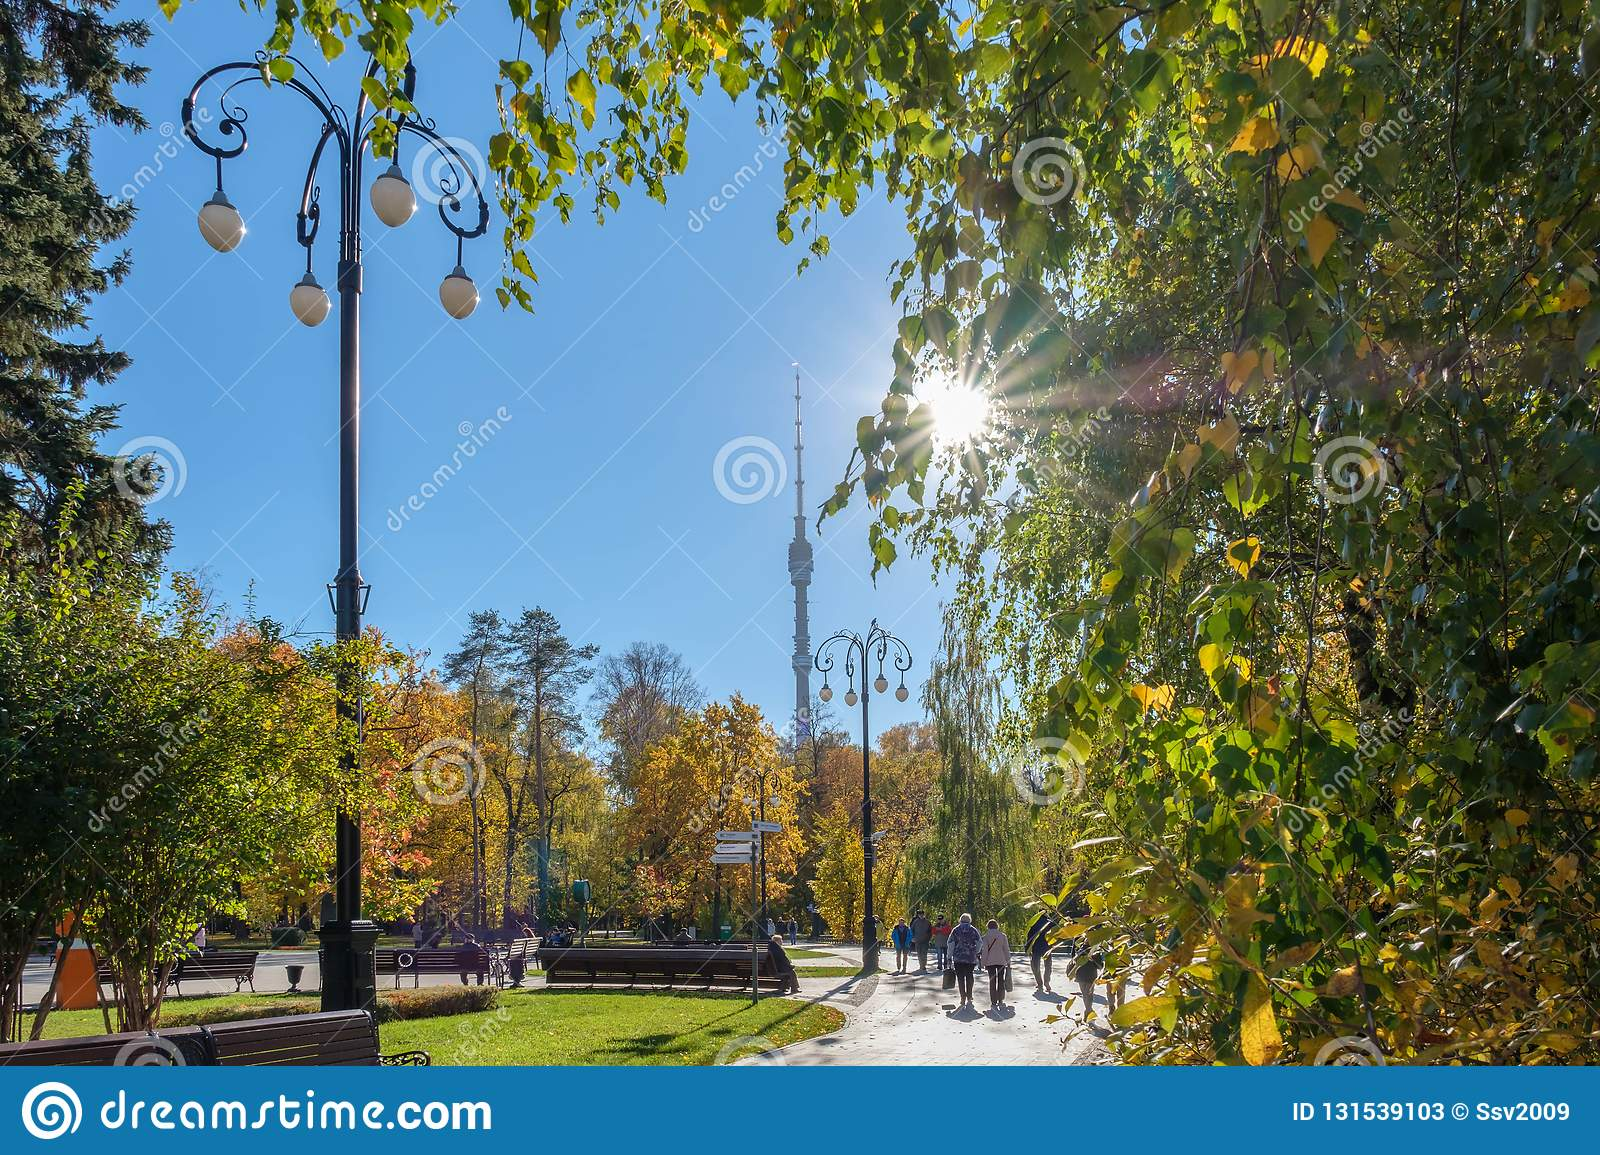 Moscow - October 12, 2018: Beautiful sunny day in Ostankino park. People walk in autumn park. The beam of sun light make their way